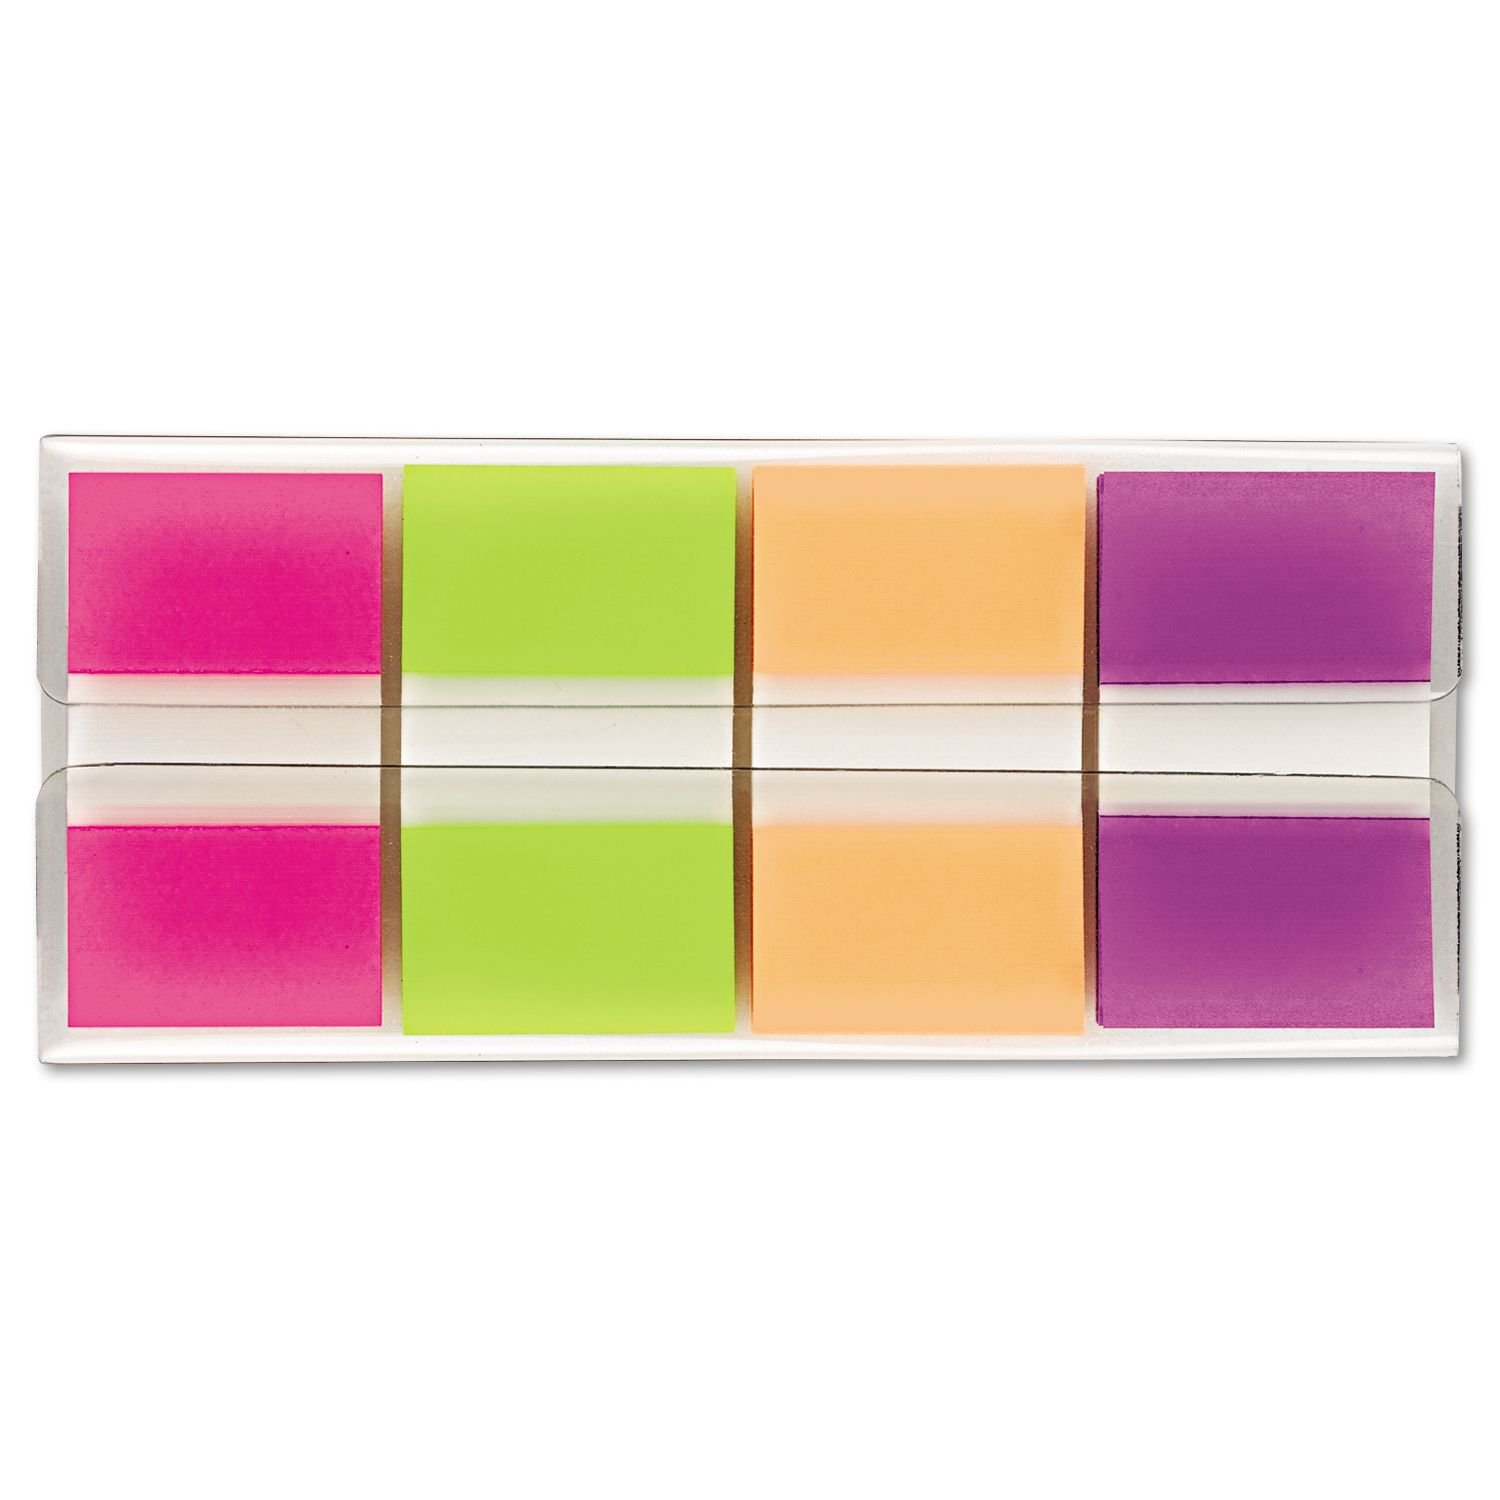 Post-it 680PGOP2 Post-it Portable Flags, 1'', 160/PK, Bright Assorted